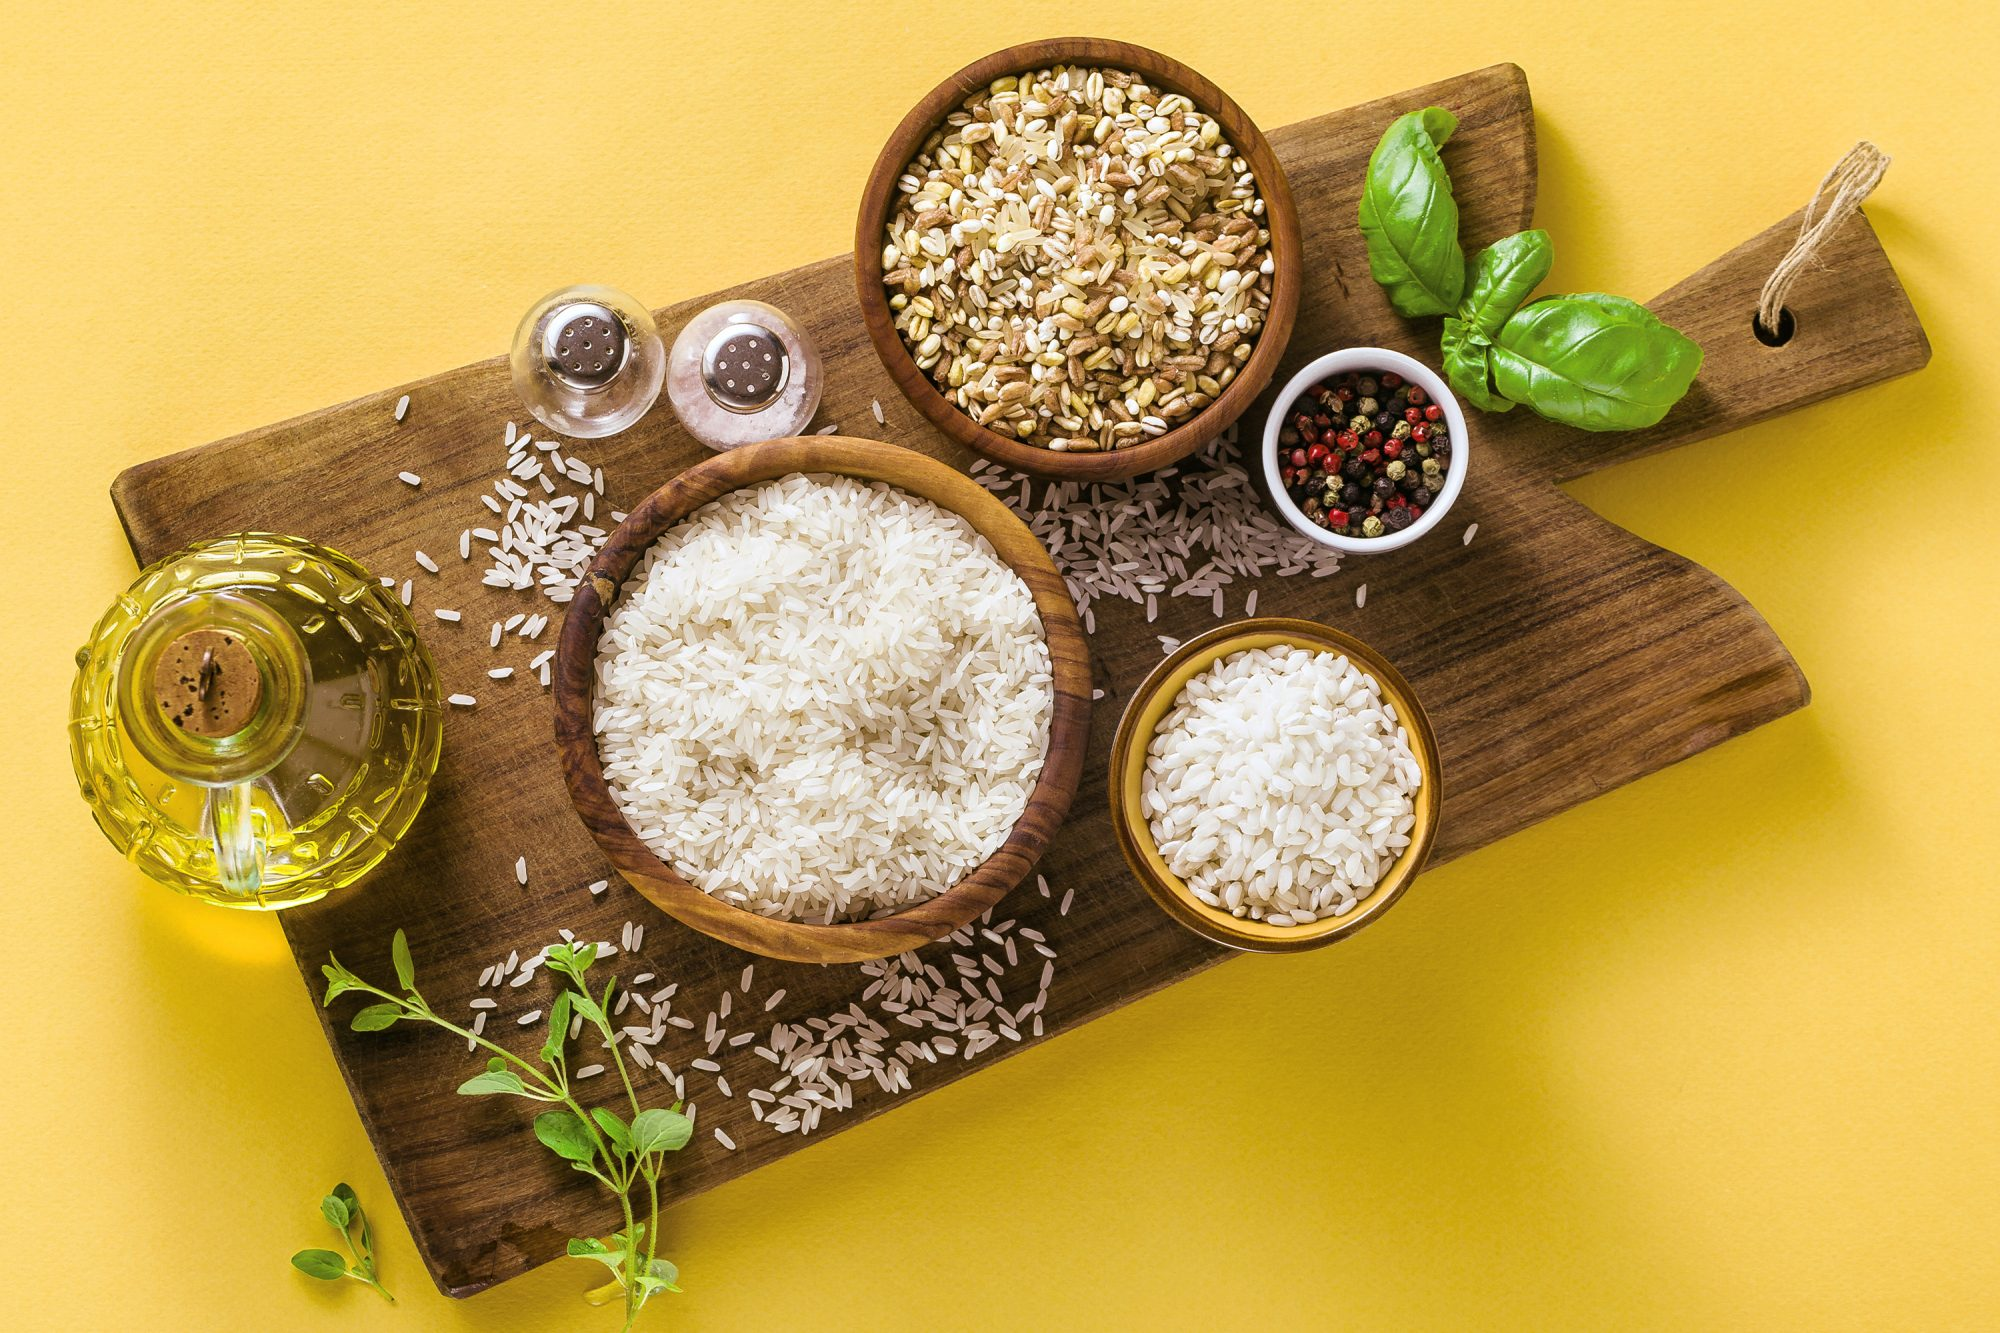 Is Rice Healthy? These Are the 3 Healthiest Types of Rice